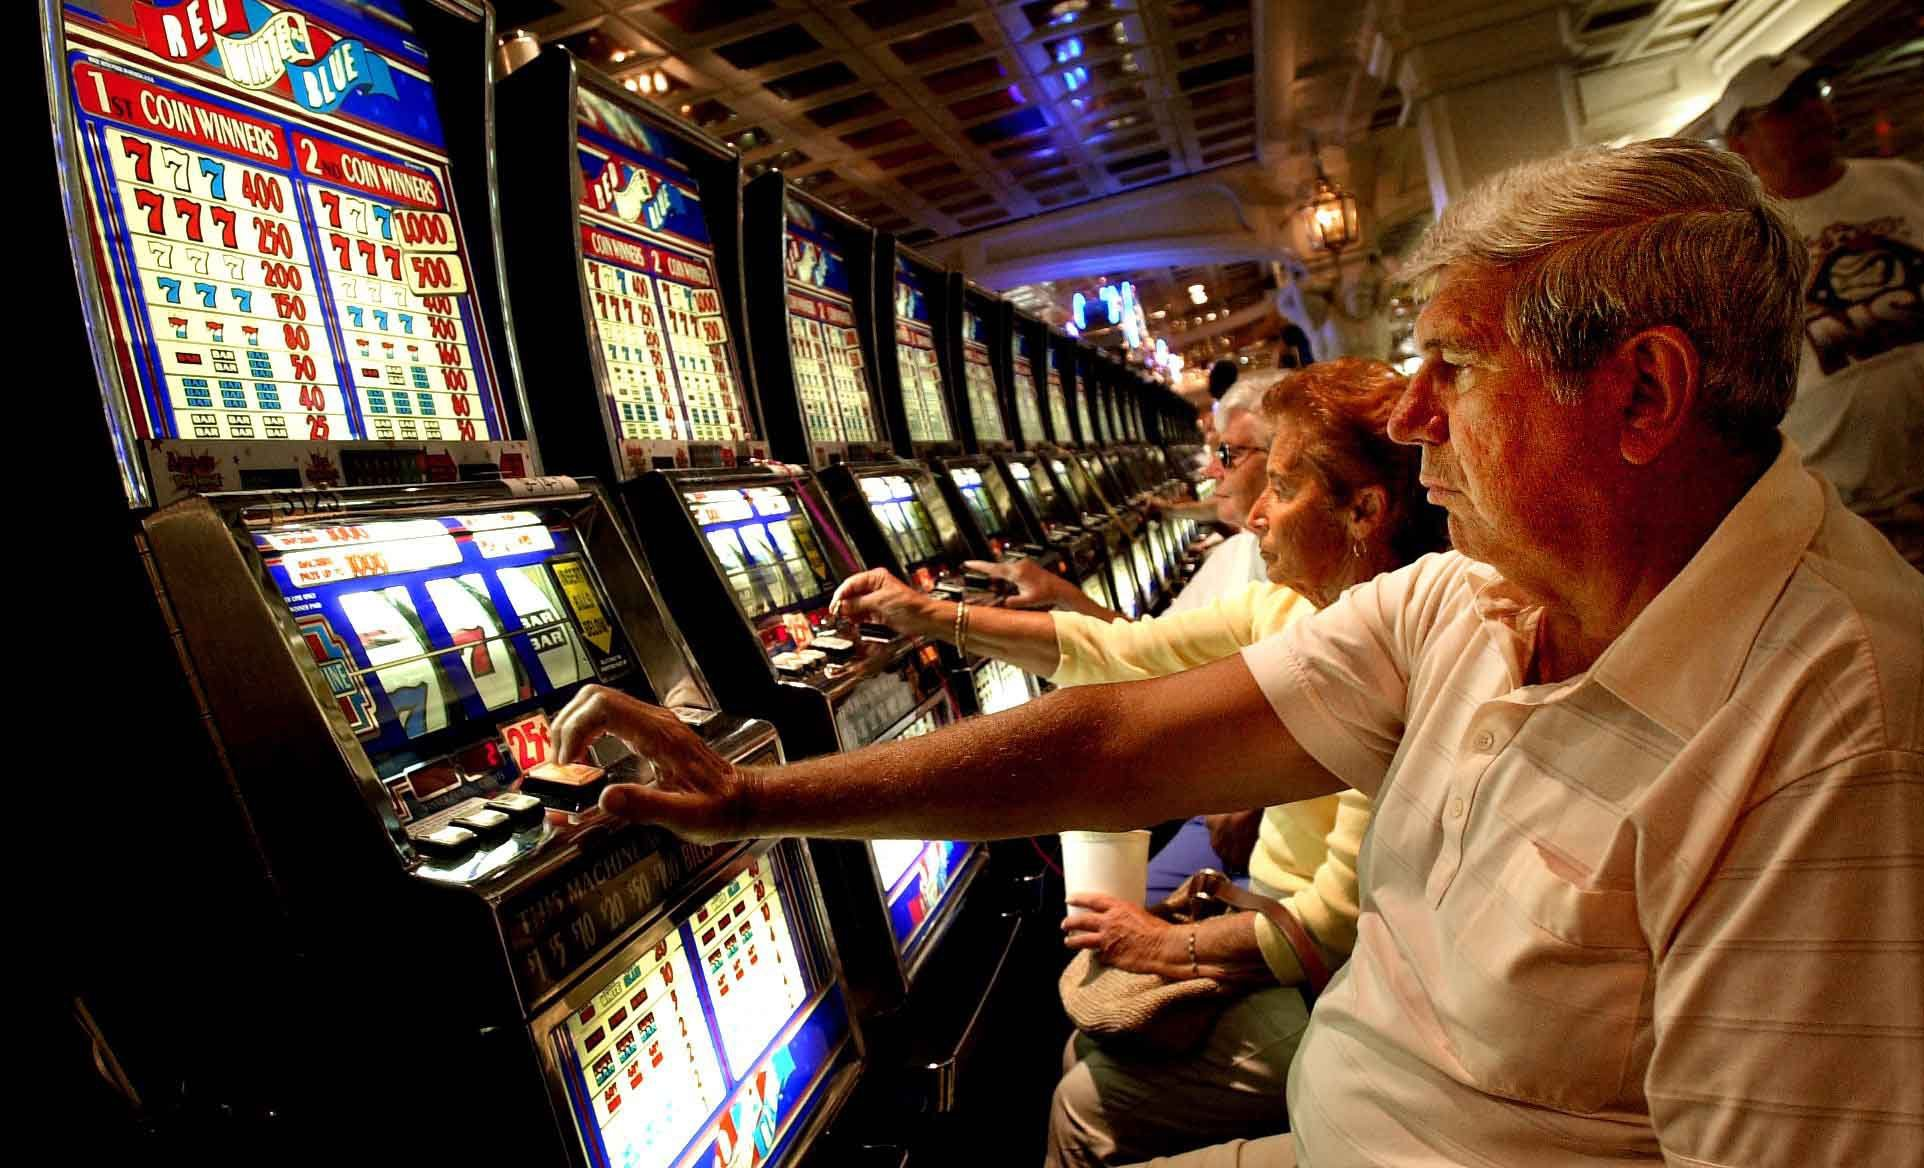 Learn How To Make Your Product The Ferrari Of Gambling